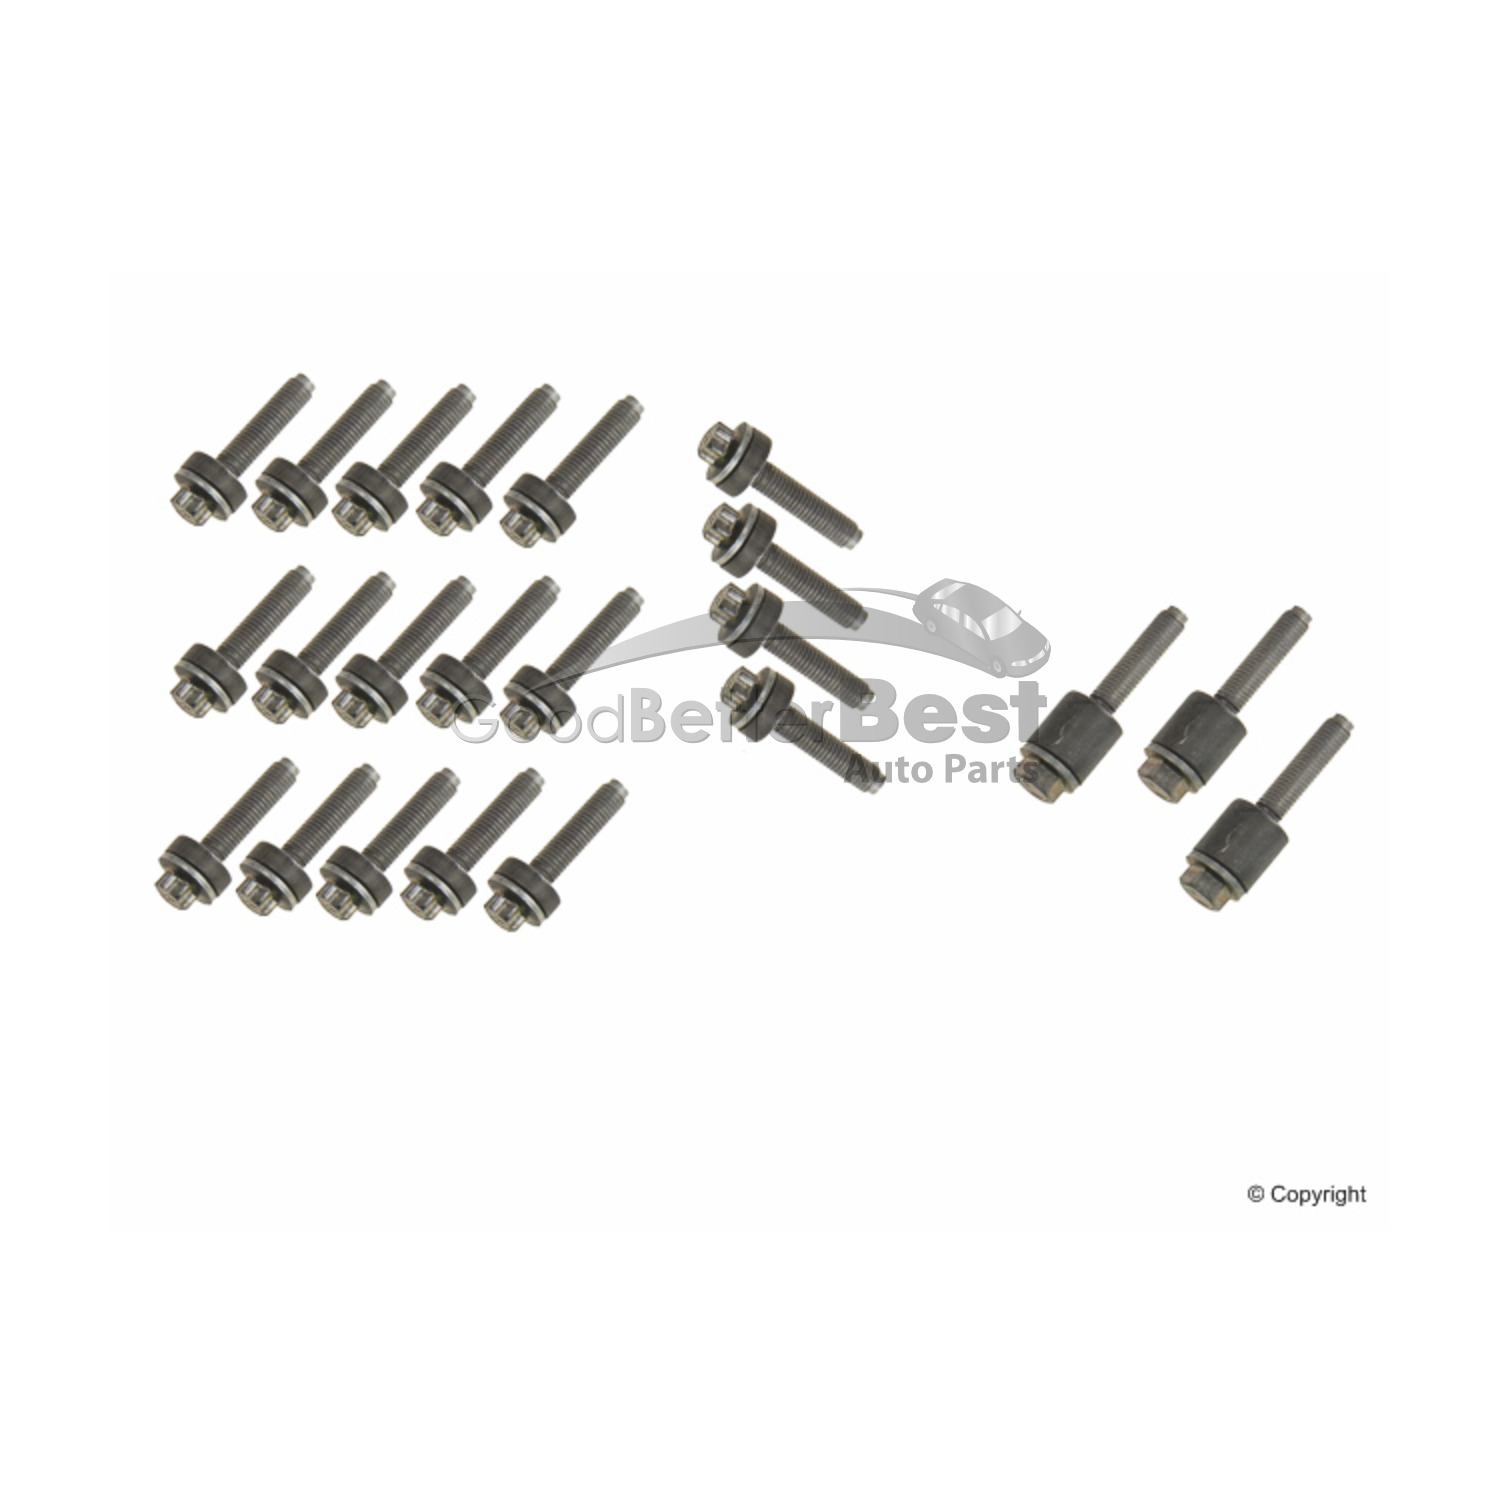 New Genuine Engine Valve Cover Screw Set For